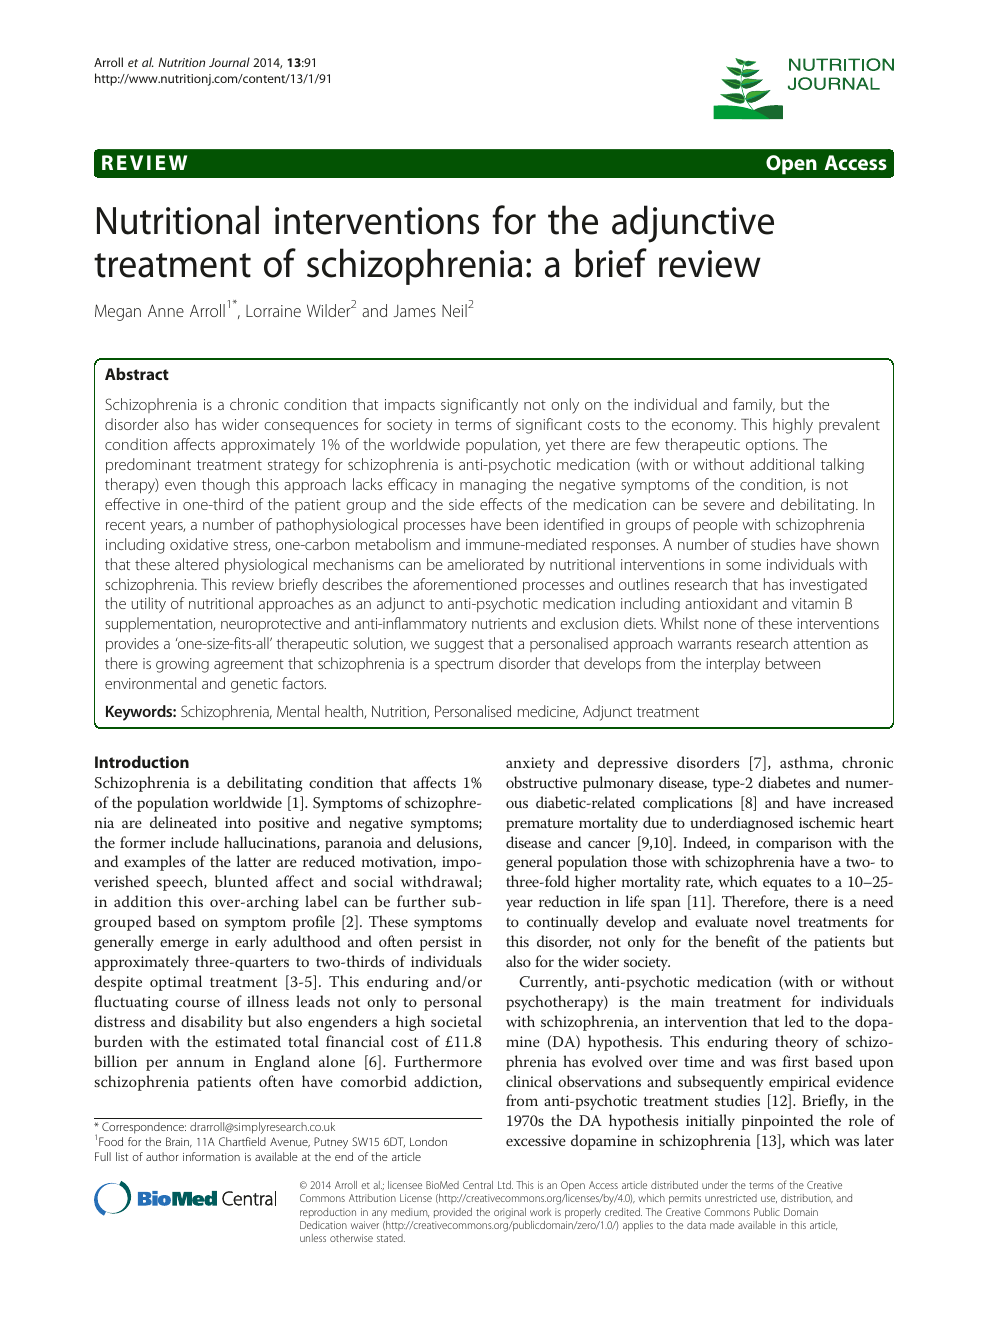 Nutritional interventions for the adjunctive treatment of